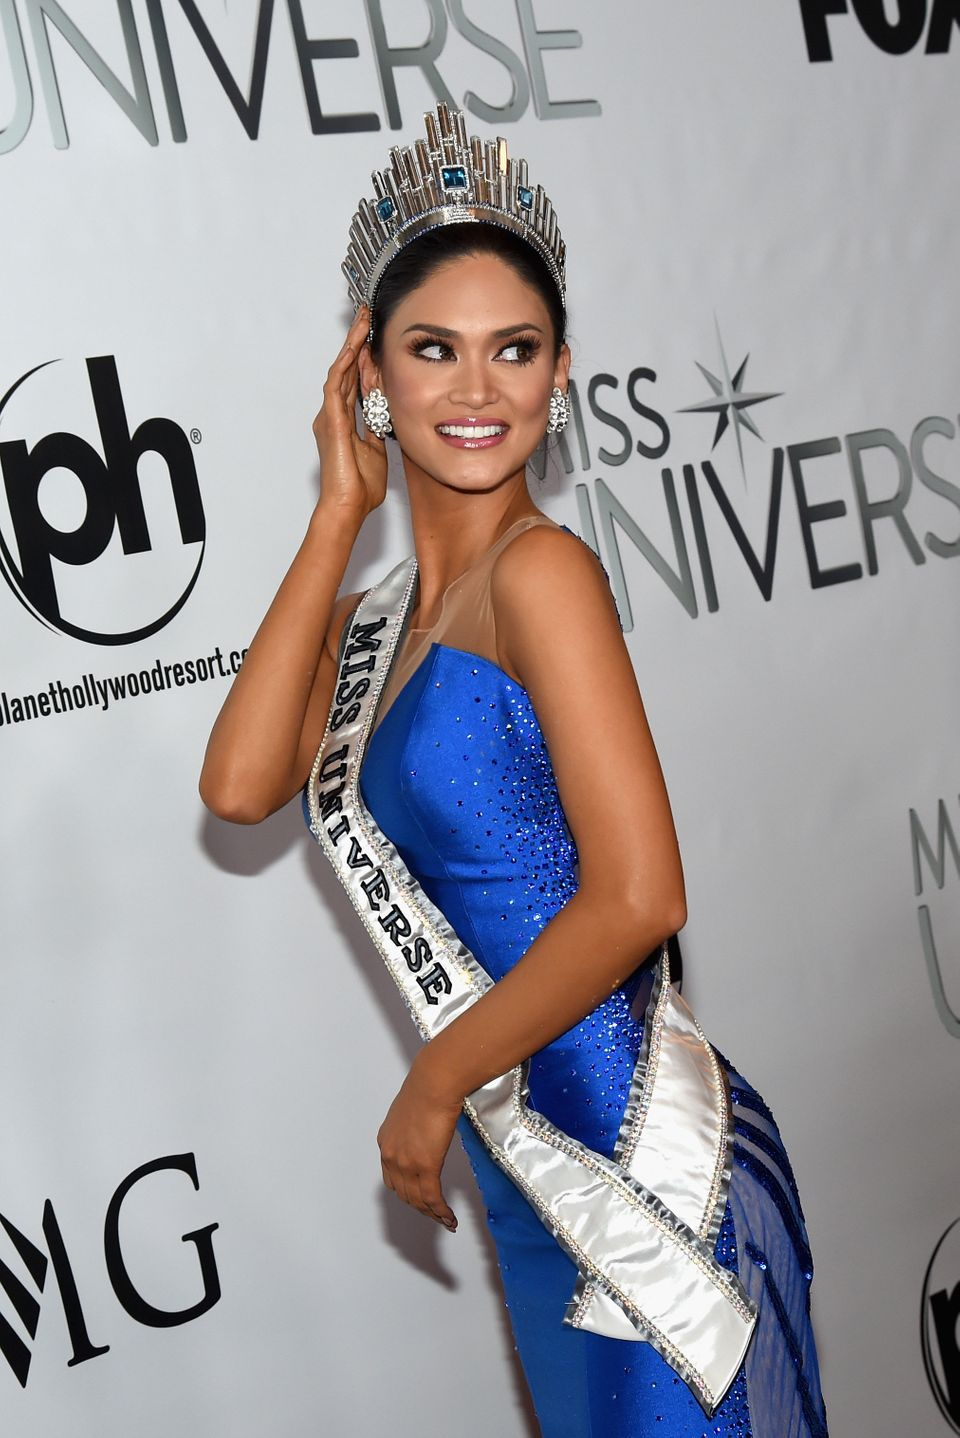 LAS VEGAS, NV - DECEMBER 20:  Miss Philippines 2015, Pia Alonzo Wurtzbach, poses for photos after winning the 2015 Miss Unive